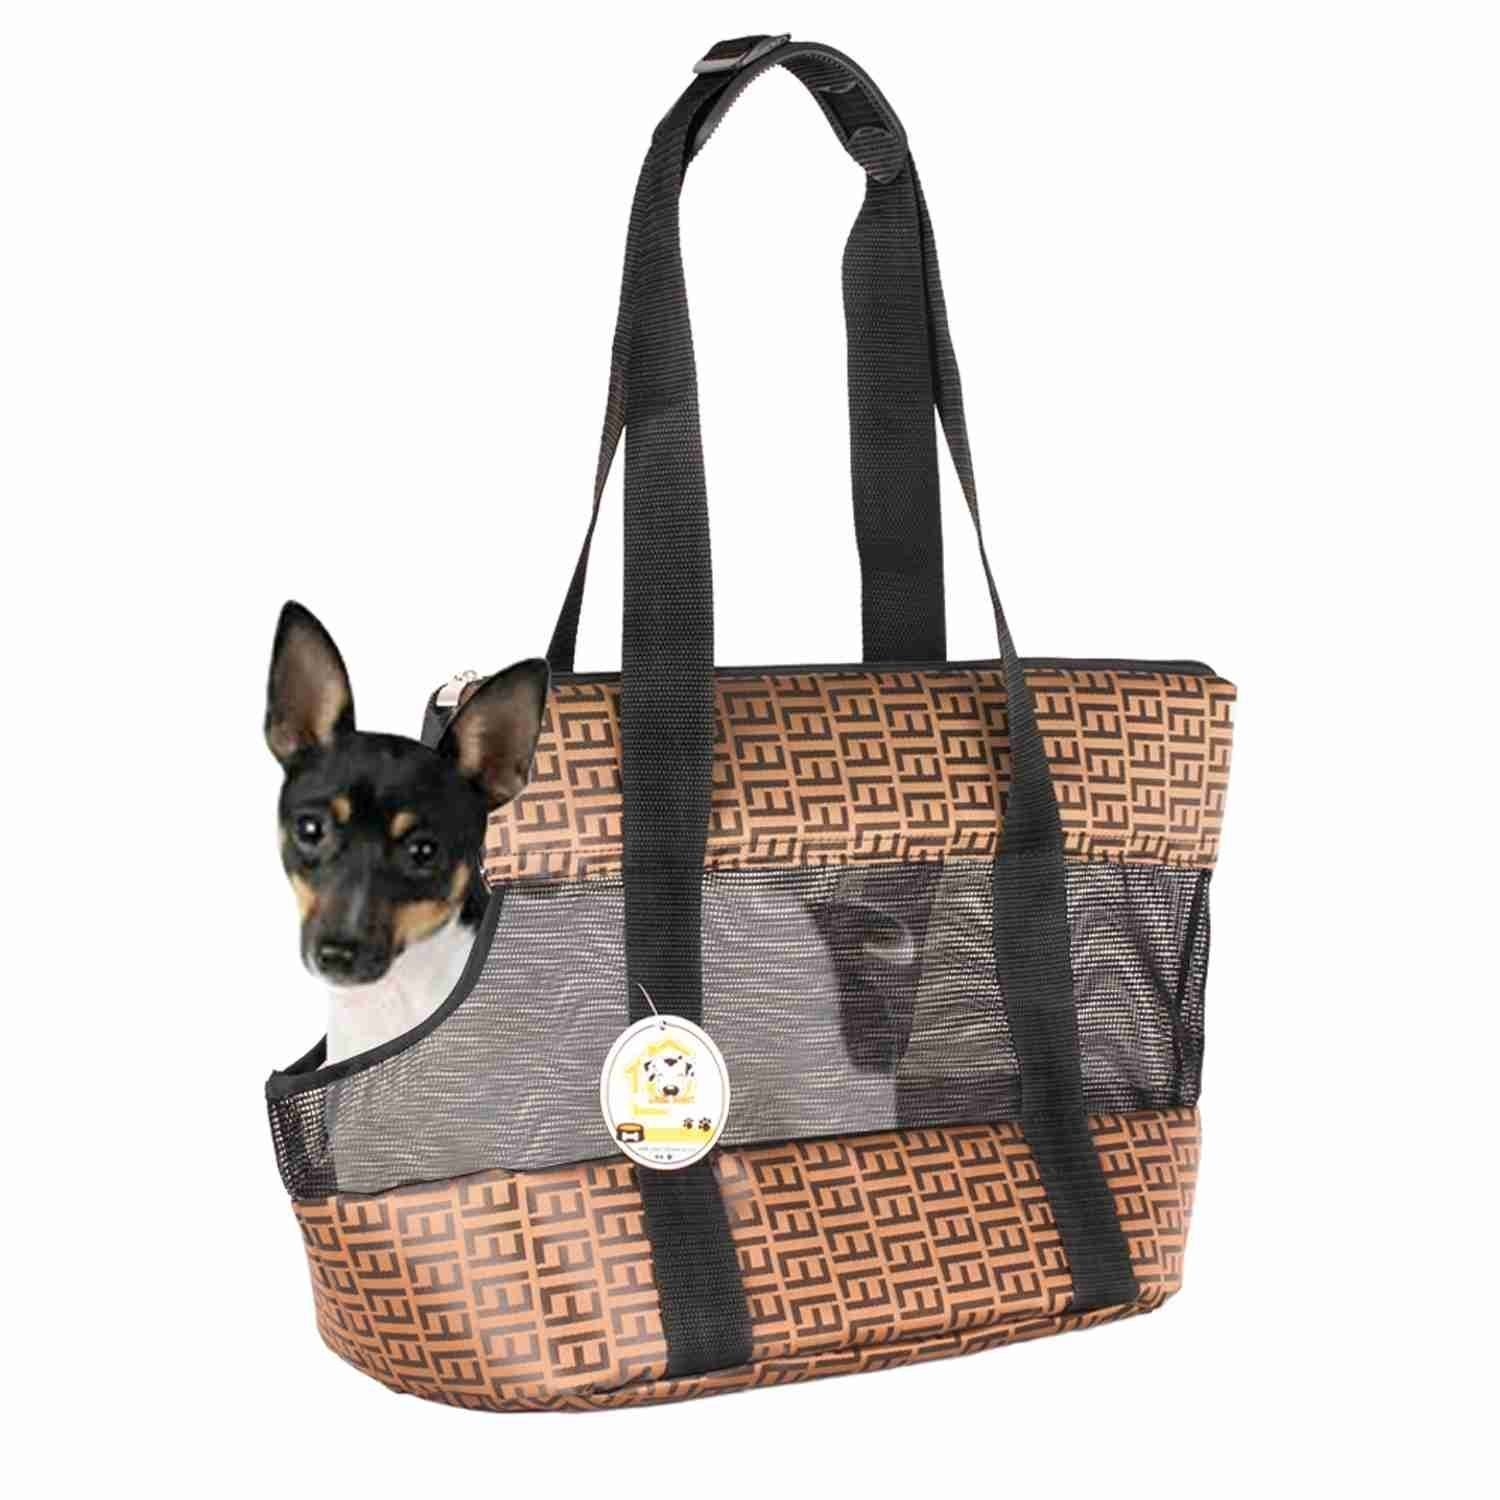 Best Dog Purse For Small Dogs 7